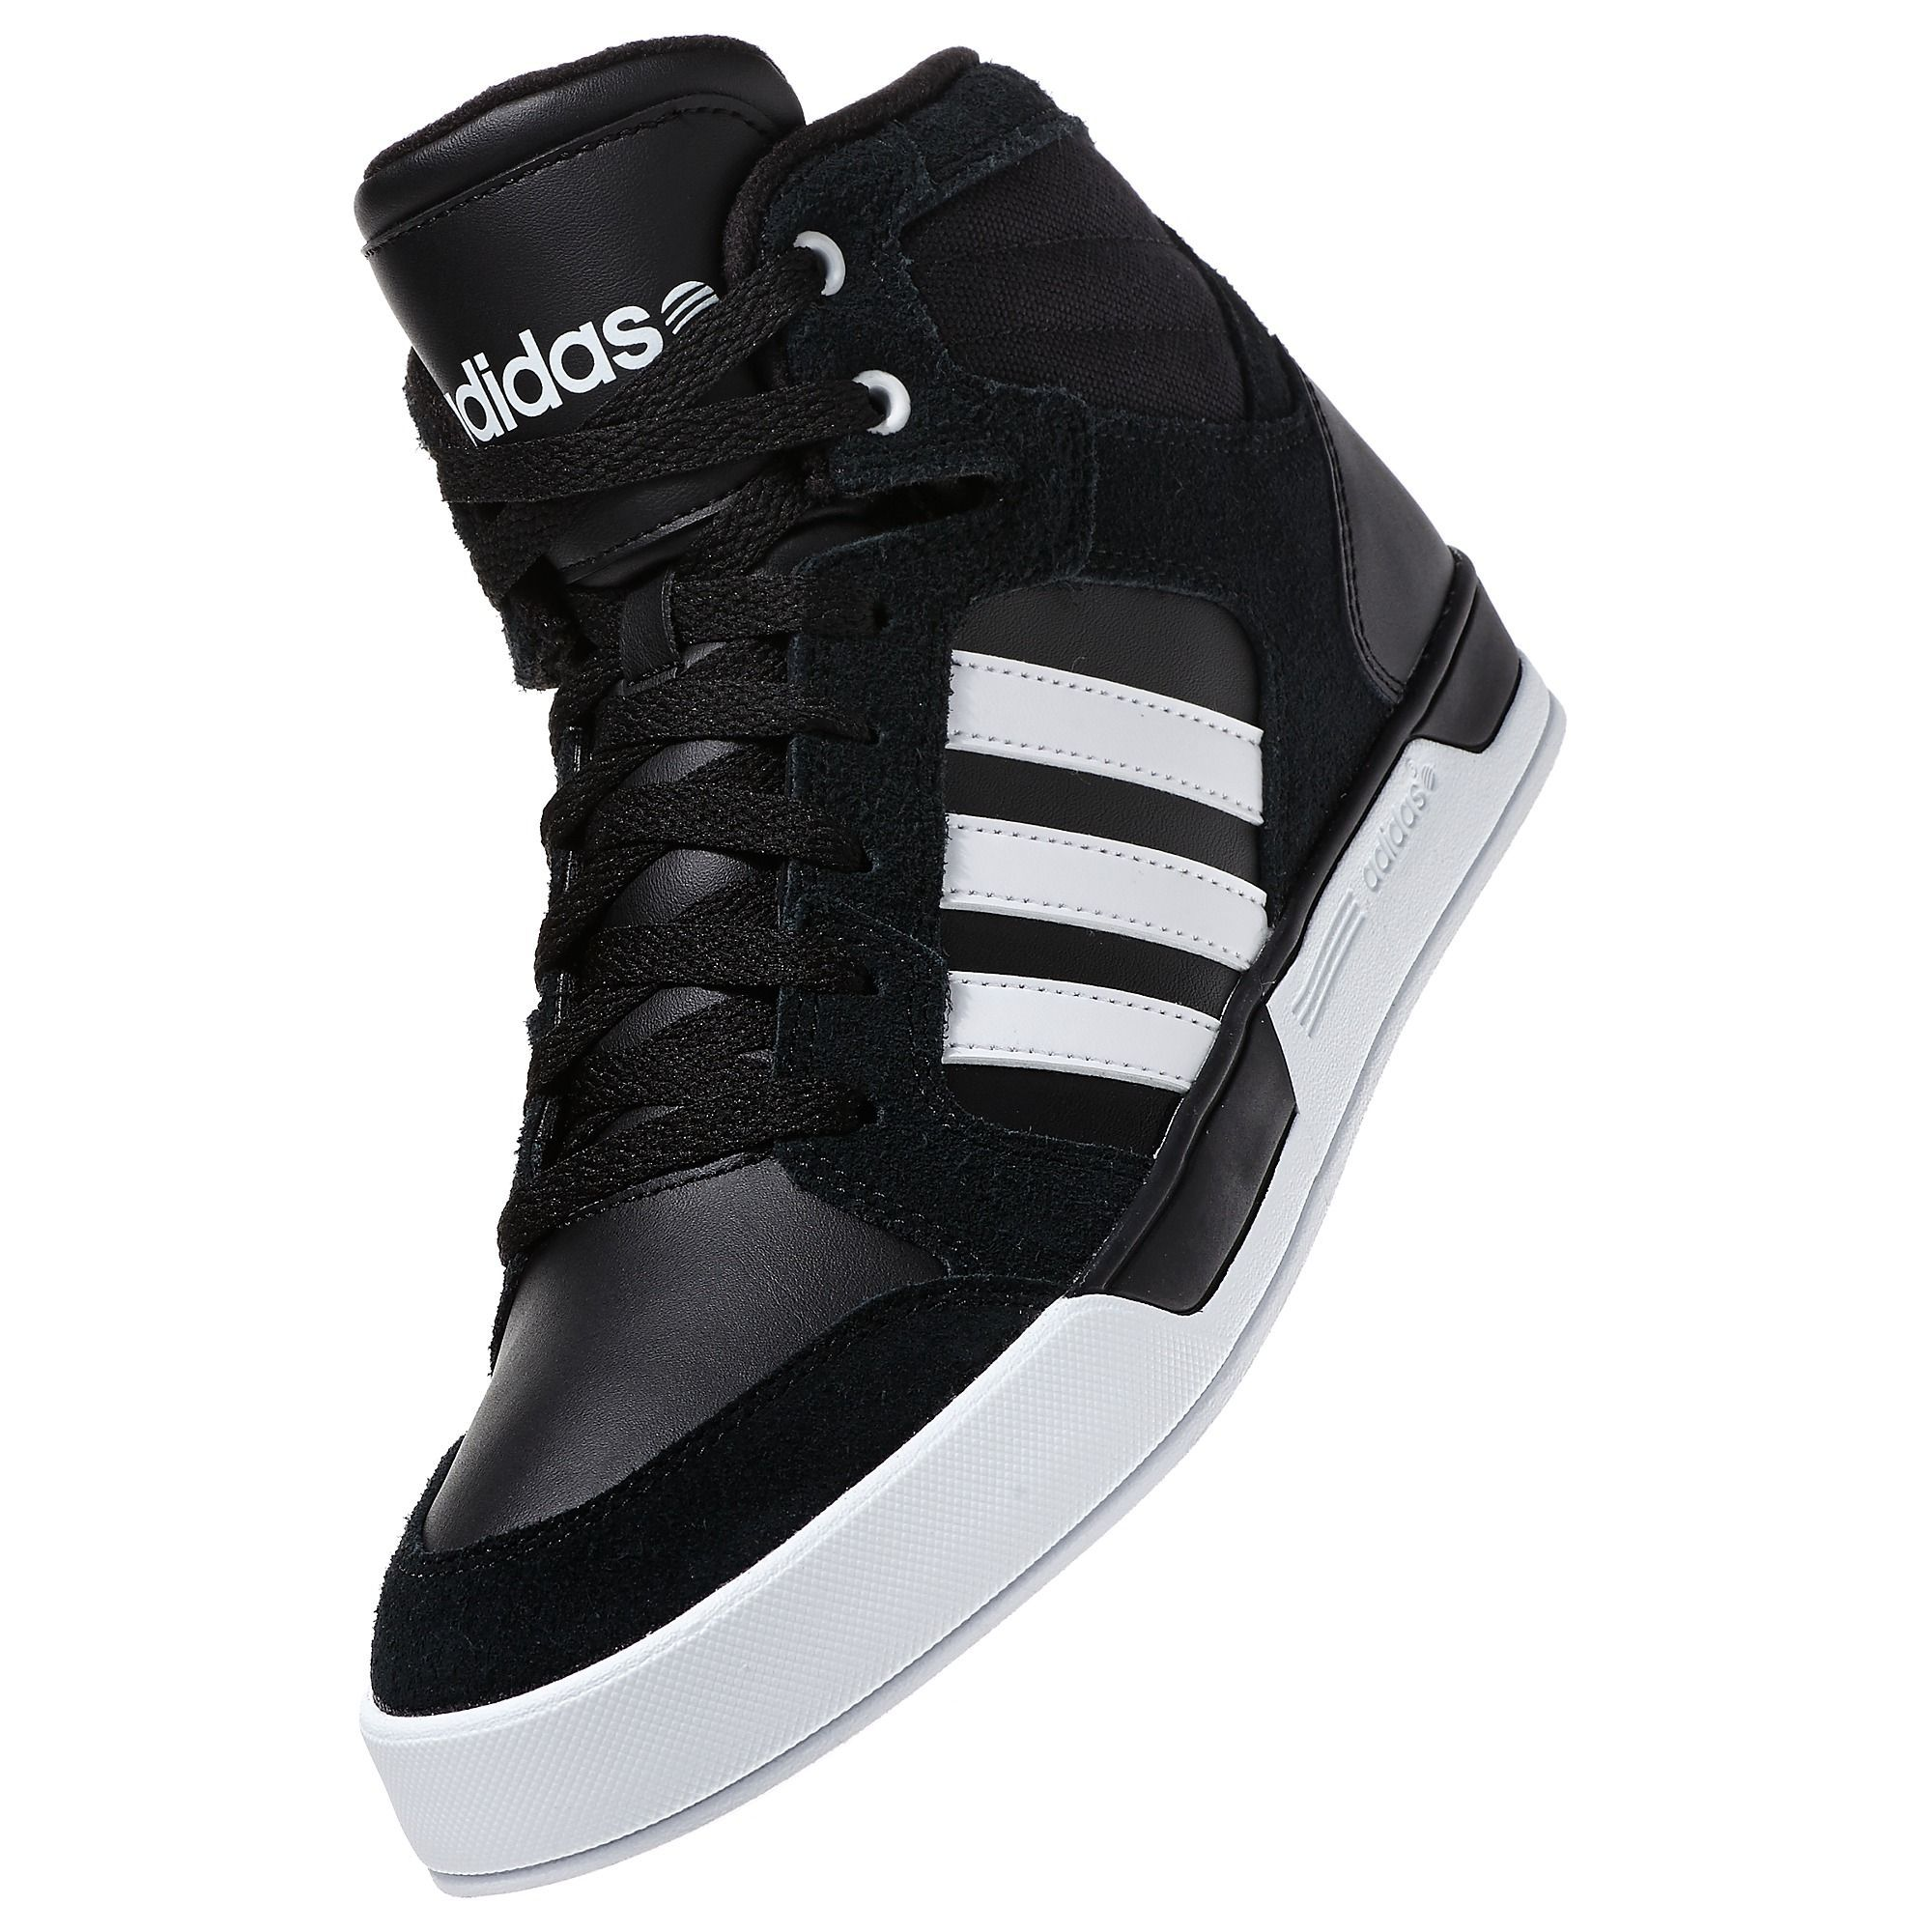 Bbneo Need ShoesI For Raleigh These Adidas Weight Lifting BordCxeW